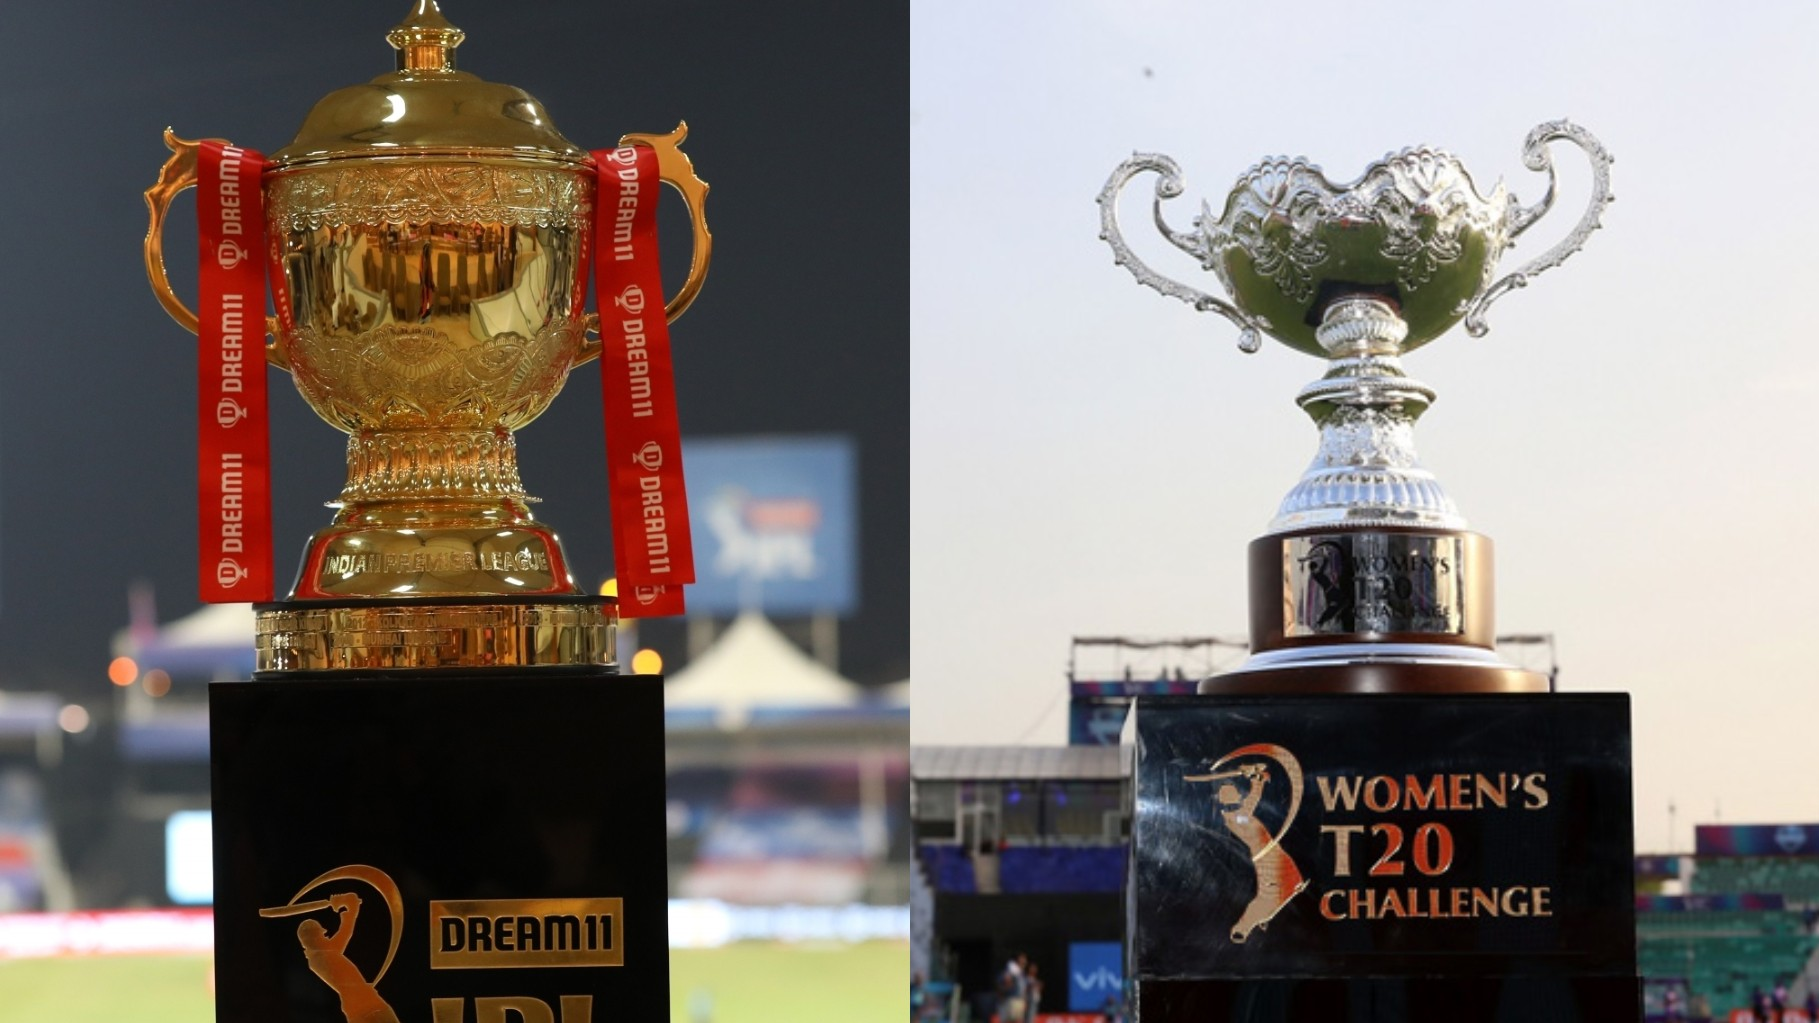 IPL 2020: BCCI reveals schedule for IPL 13 playoff matches; also shares Women's T20 Challenge itinerary